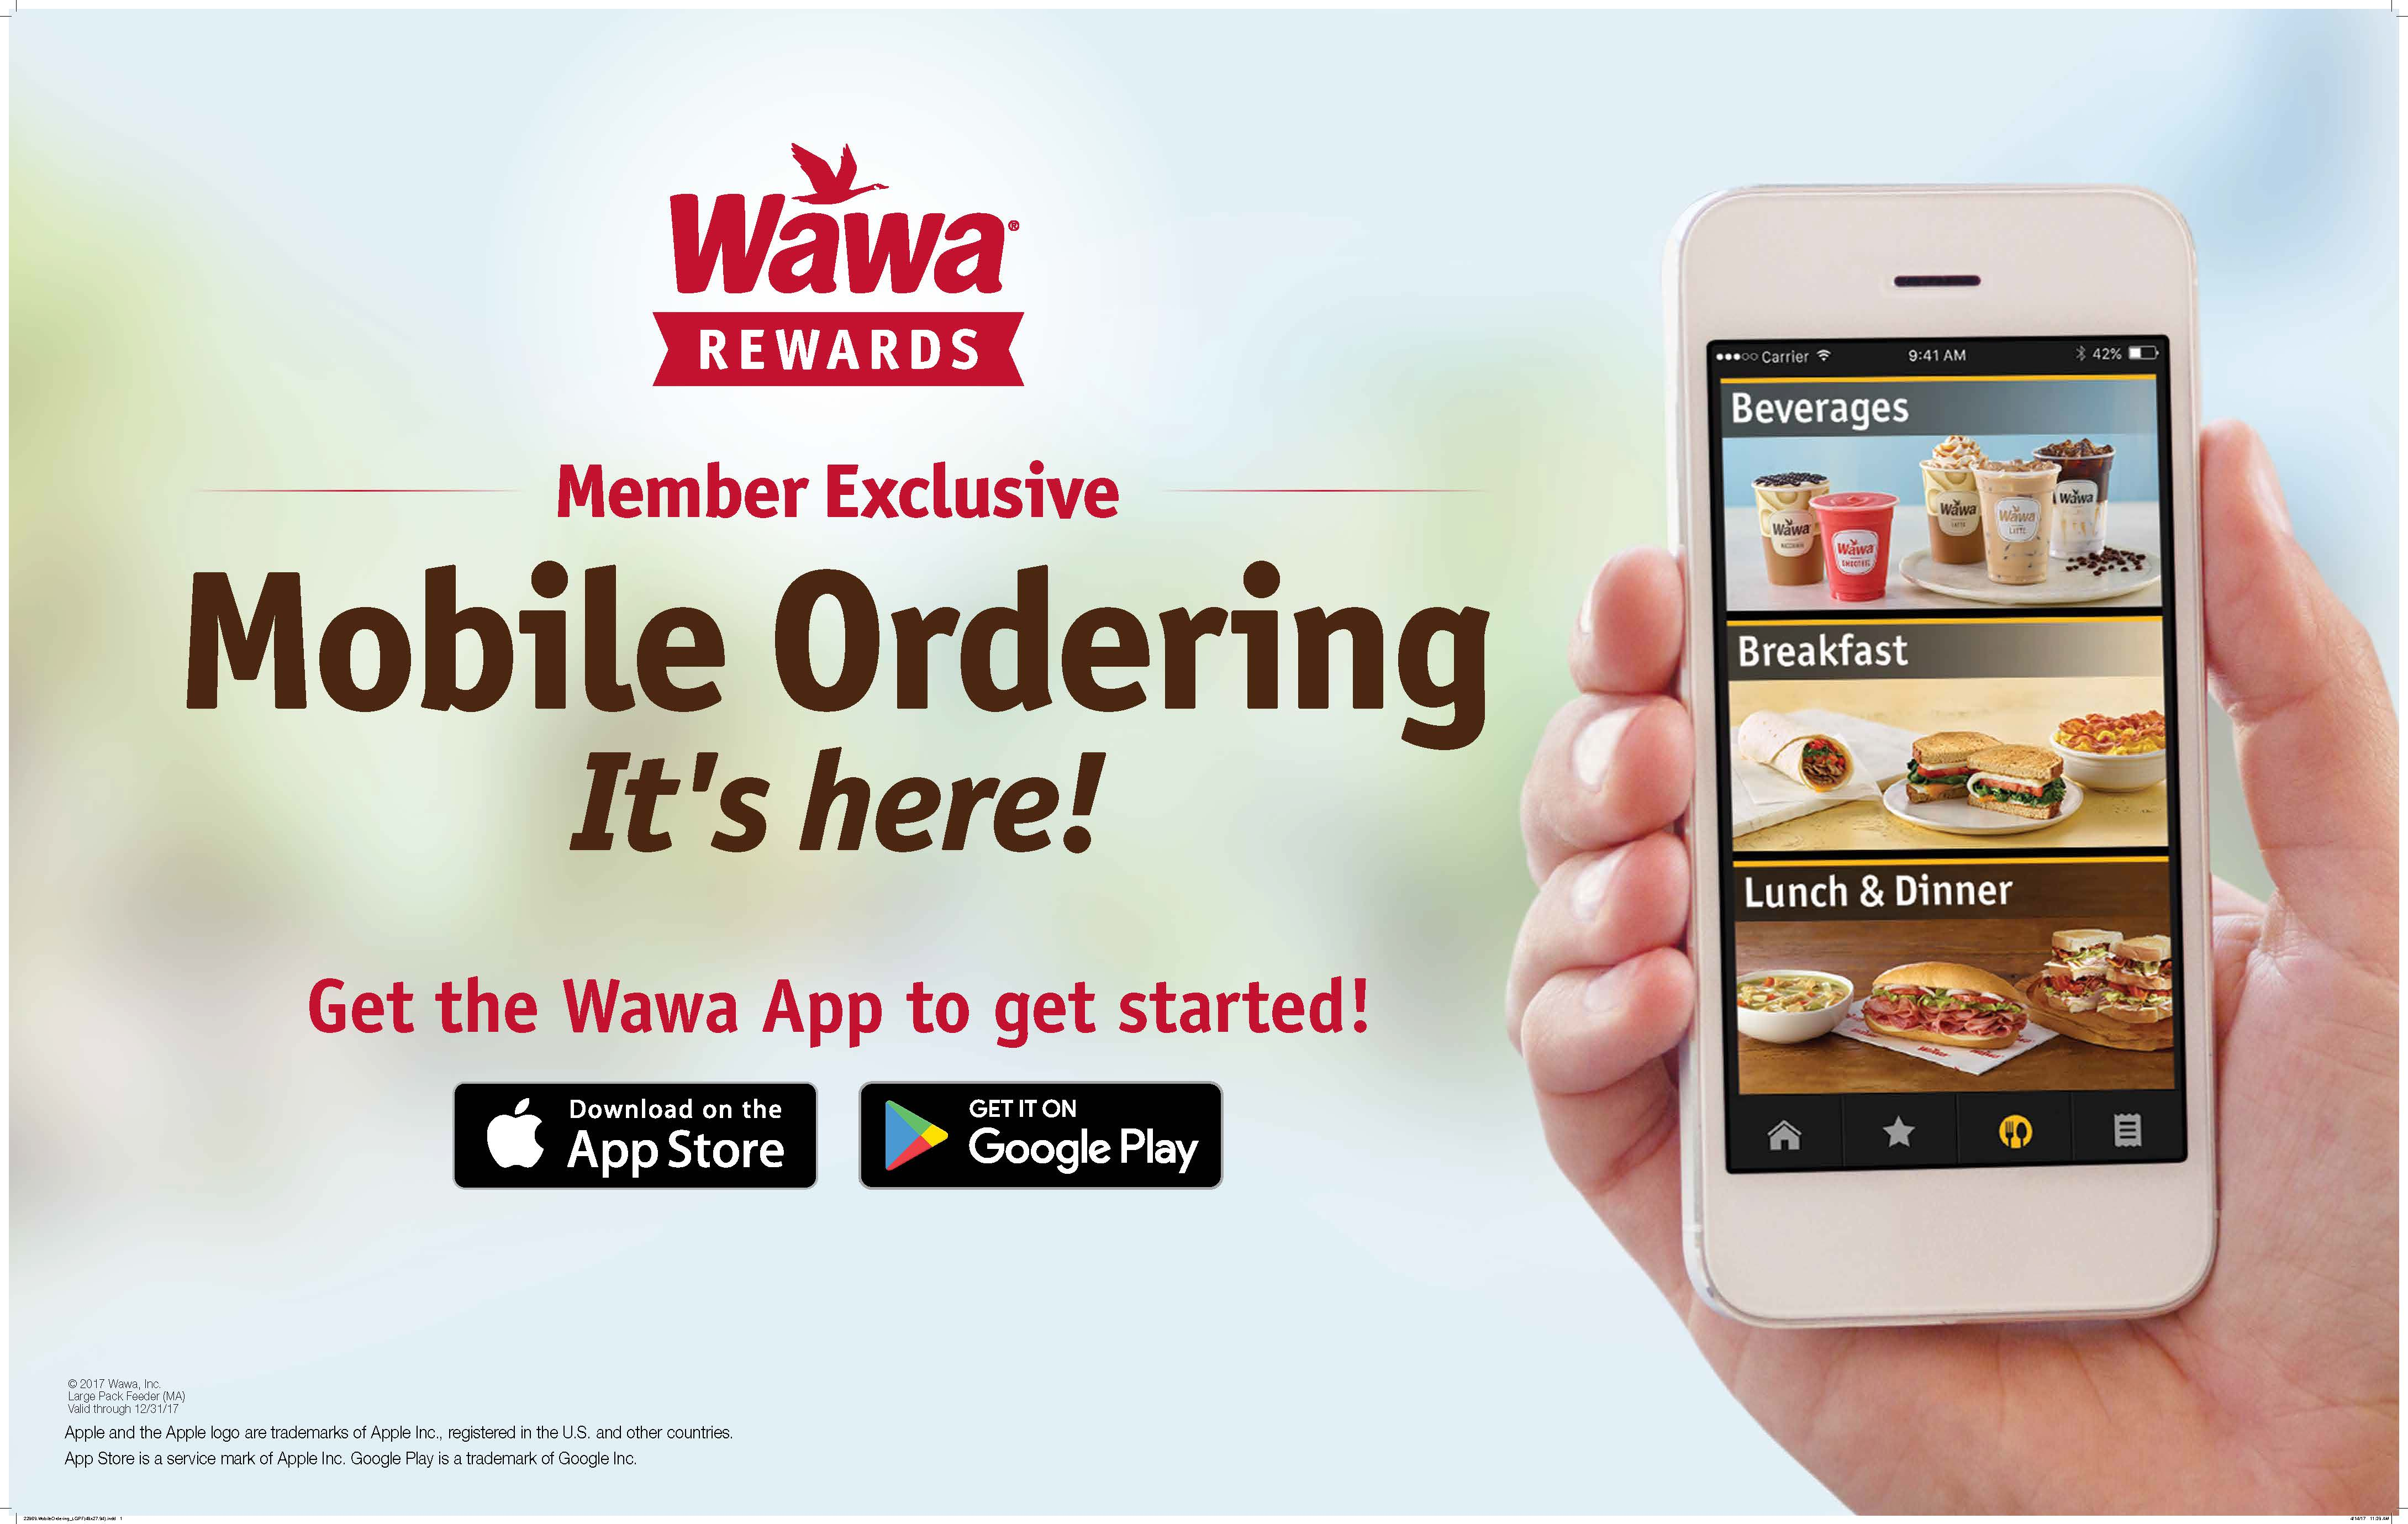 Easier to order. Easier to pay. All with the NEW Wawa App. Make your next Wawa run even more convenient with the new Wawa App! With features like simplified mobile ordering, it's easier than ever to browse the menu, order (and reorder) favorites, and see what's new.